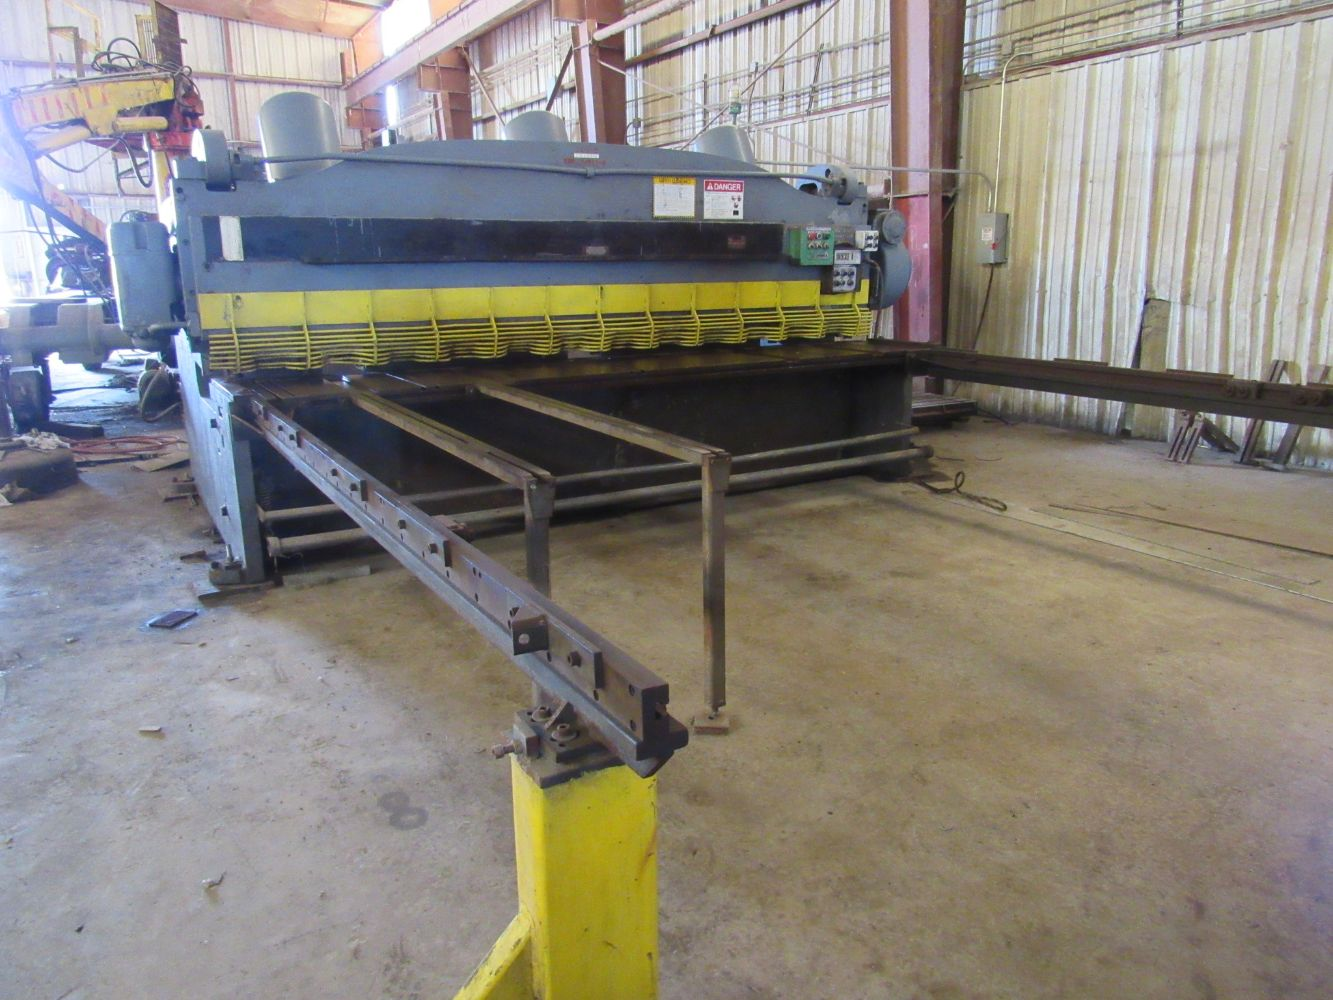 Complete Plant Support and Maintenance Machine & Fabrication Shop - New Date May 18